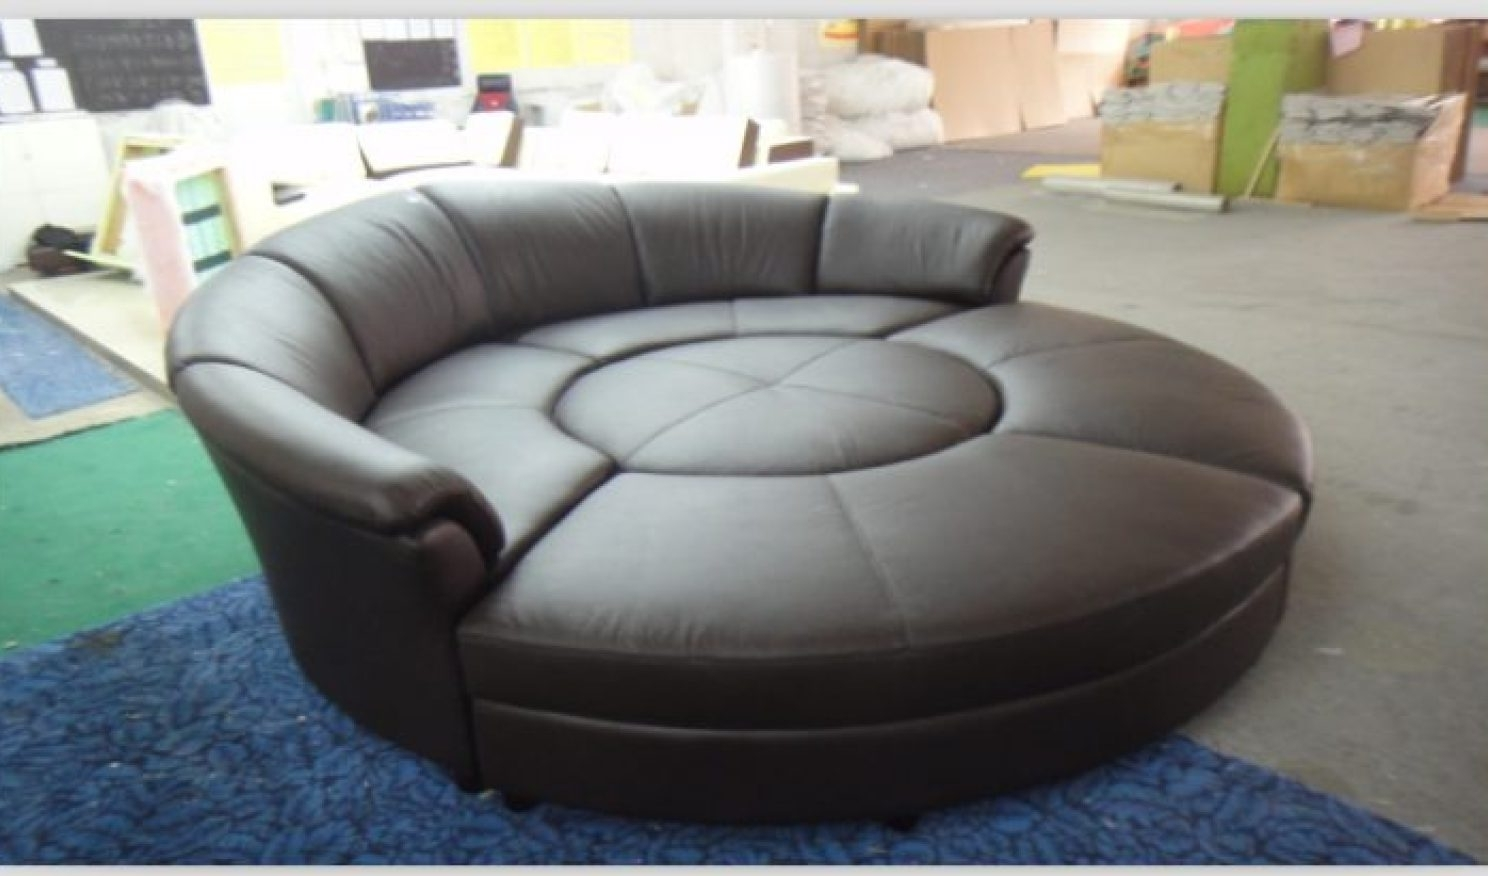 Widely Used Big Sofa Chairs Inside Sofa : Sofa Cute Big Chairs Stunning Circular Chair Explore Round (View 10 of 15)